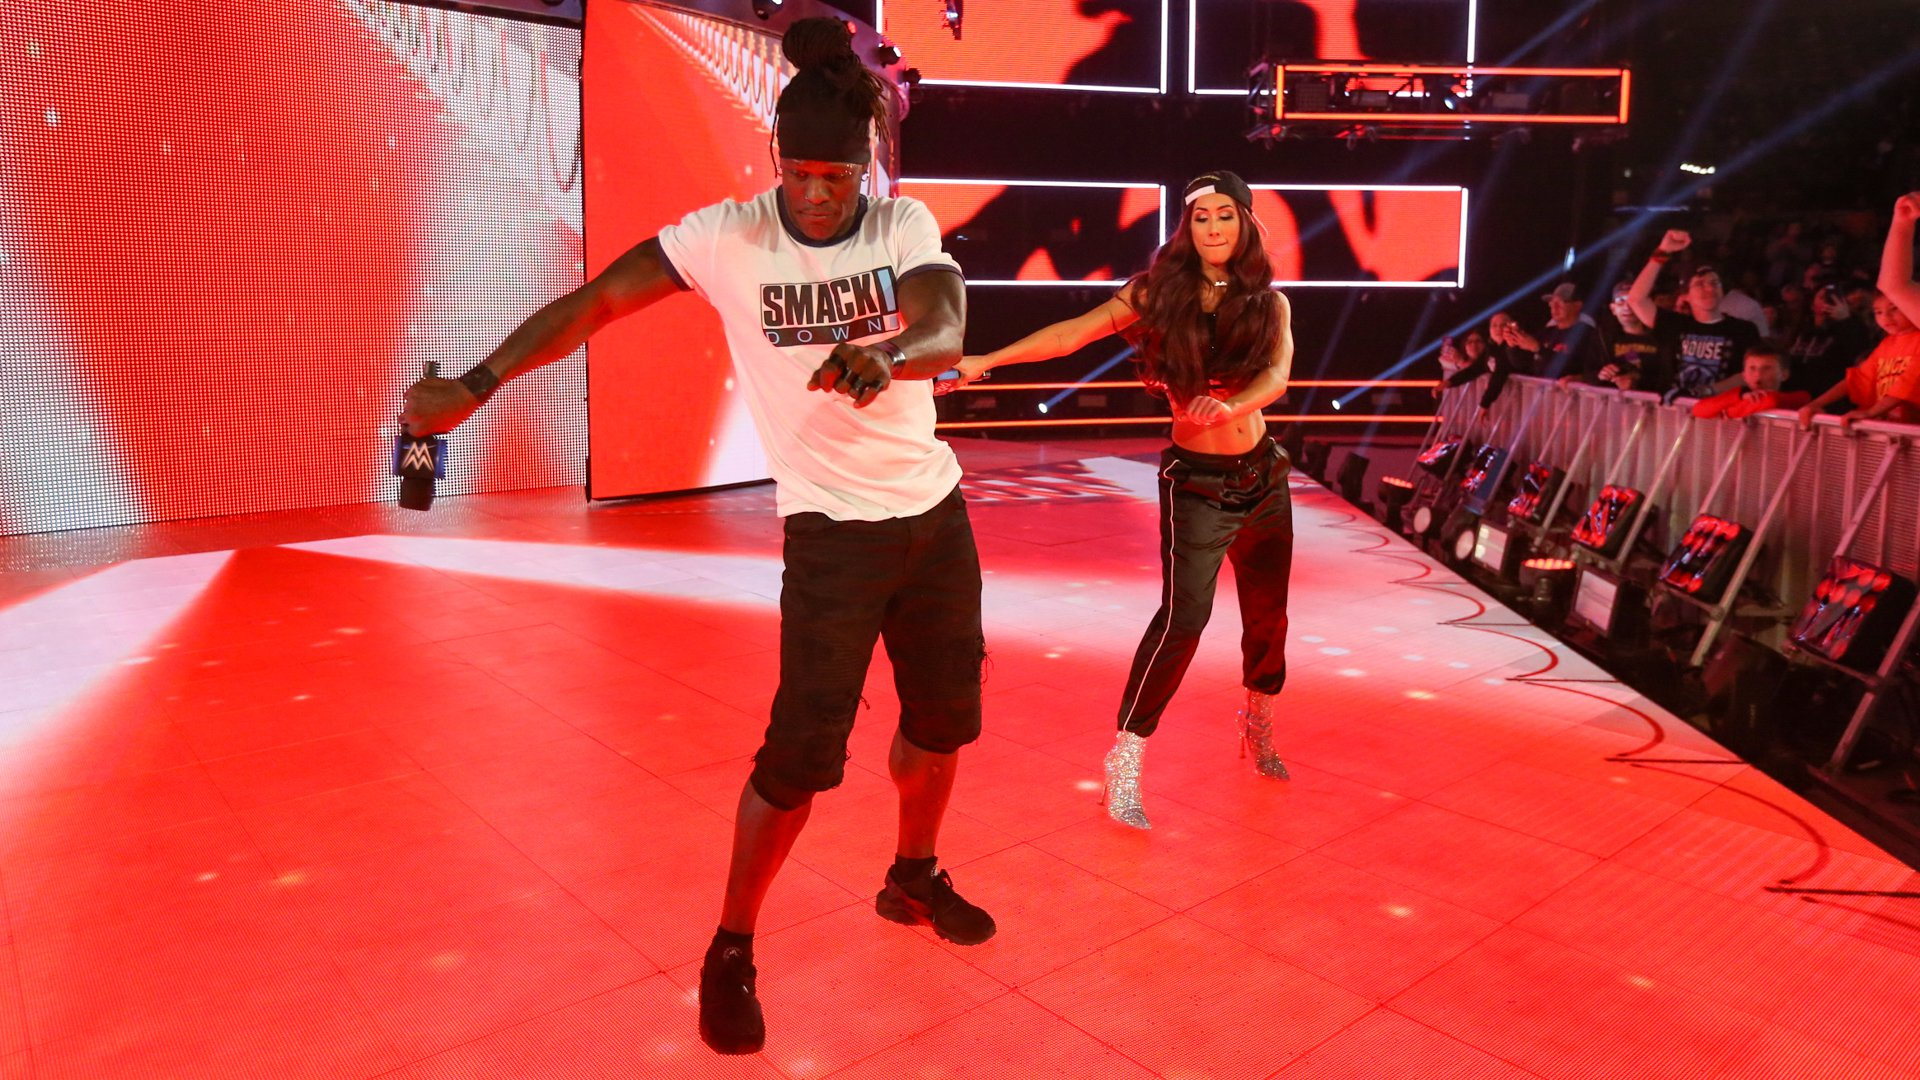 R-Truth and Carmella interrupt The A-Lister for their trademark dance break!